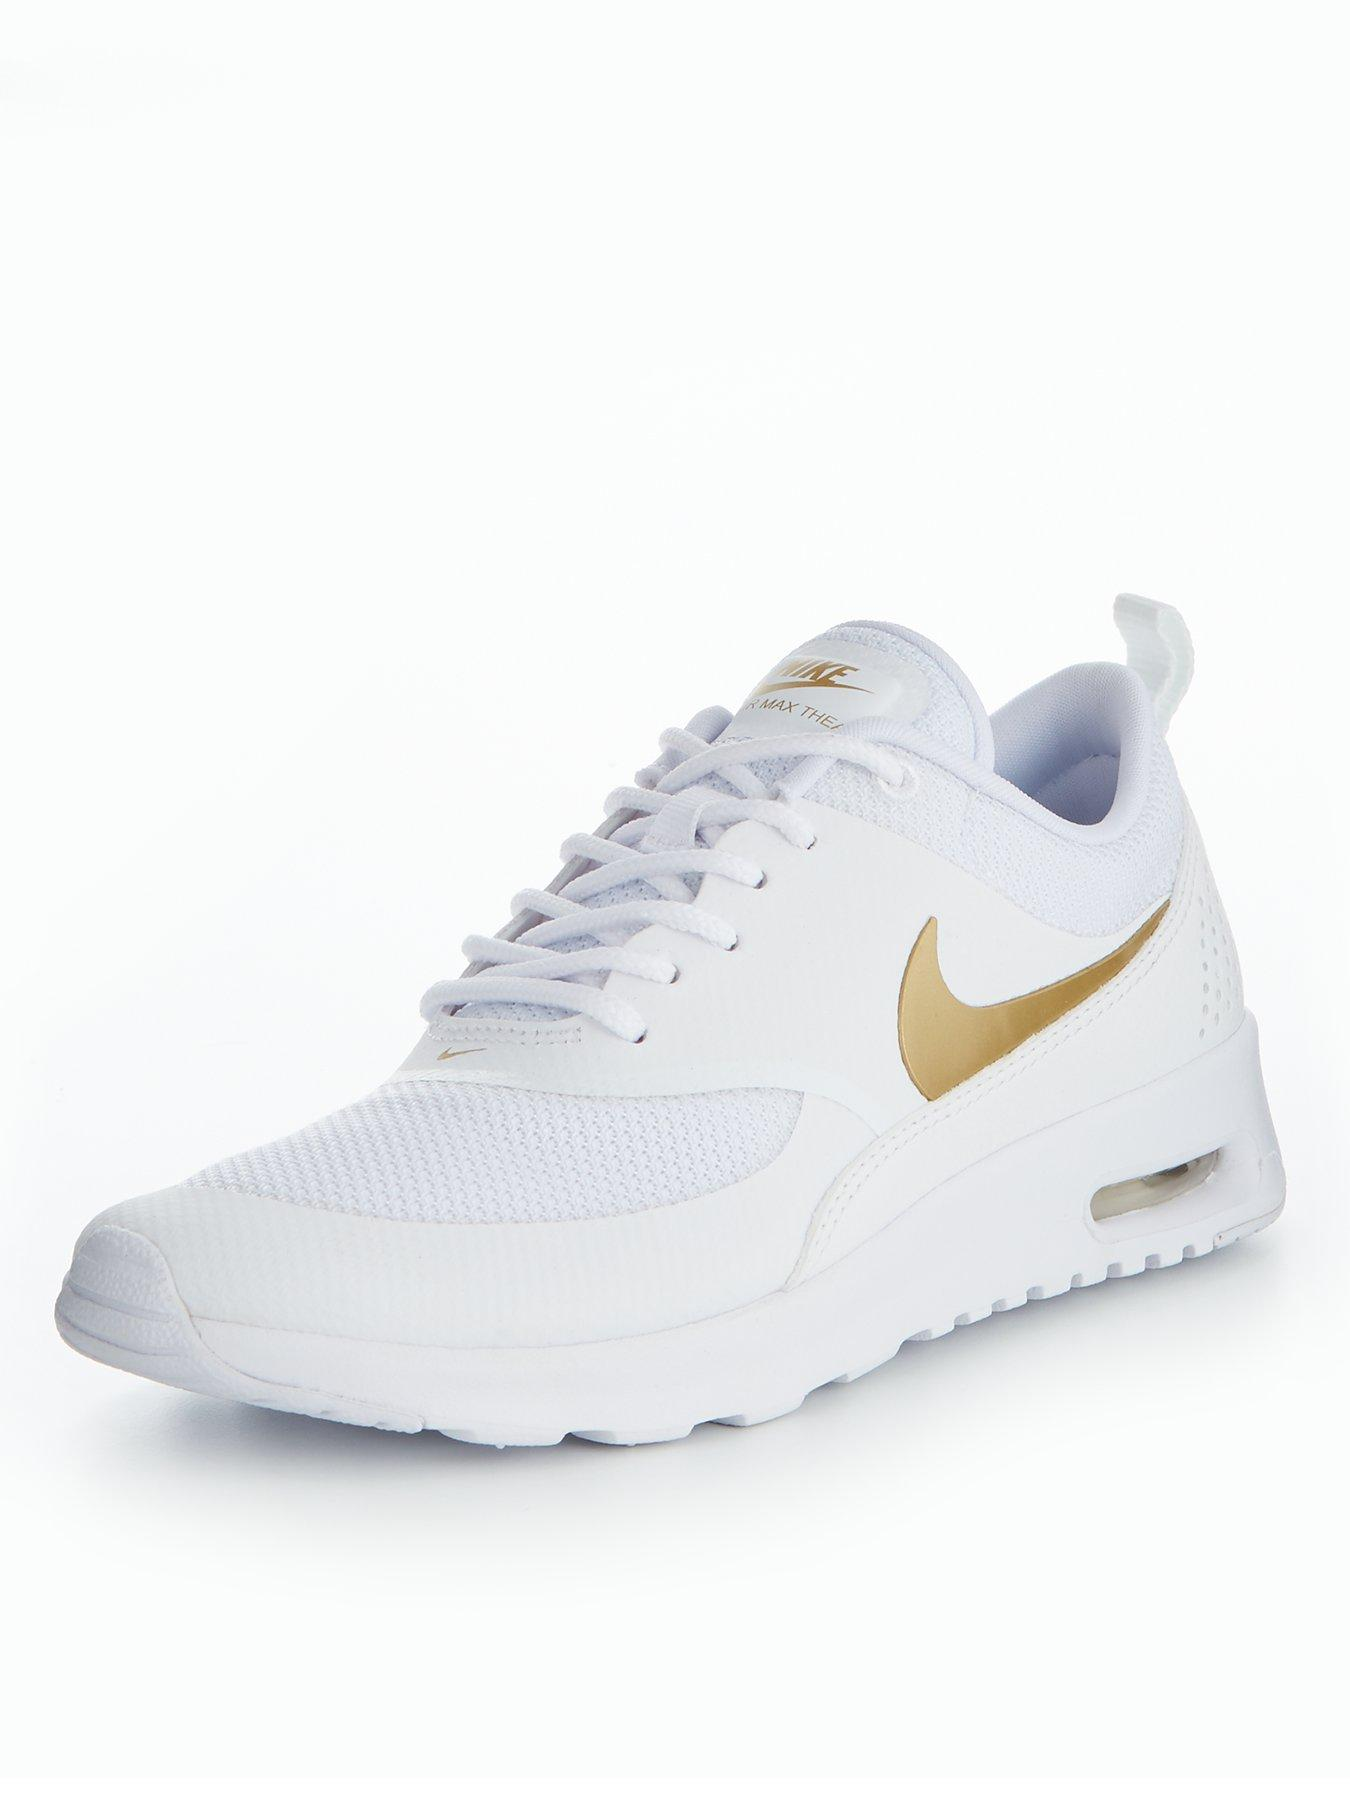 Nike Air Max Thea Metallic - White